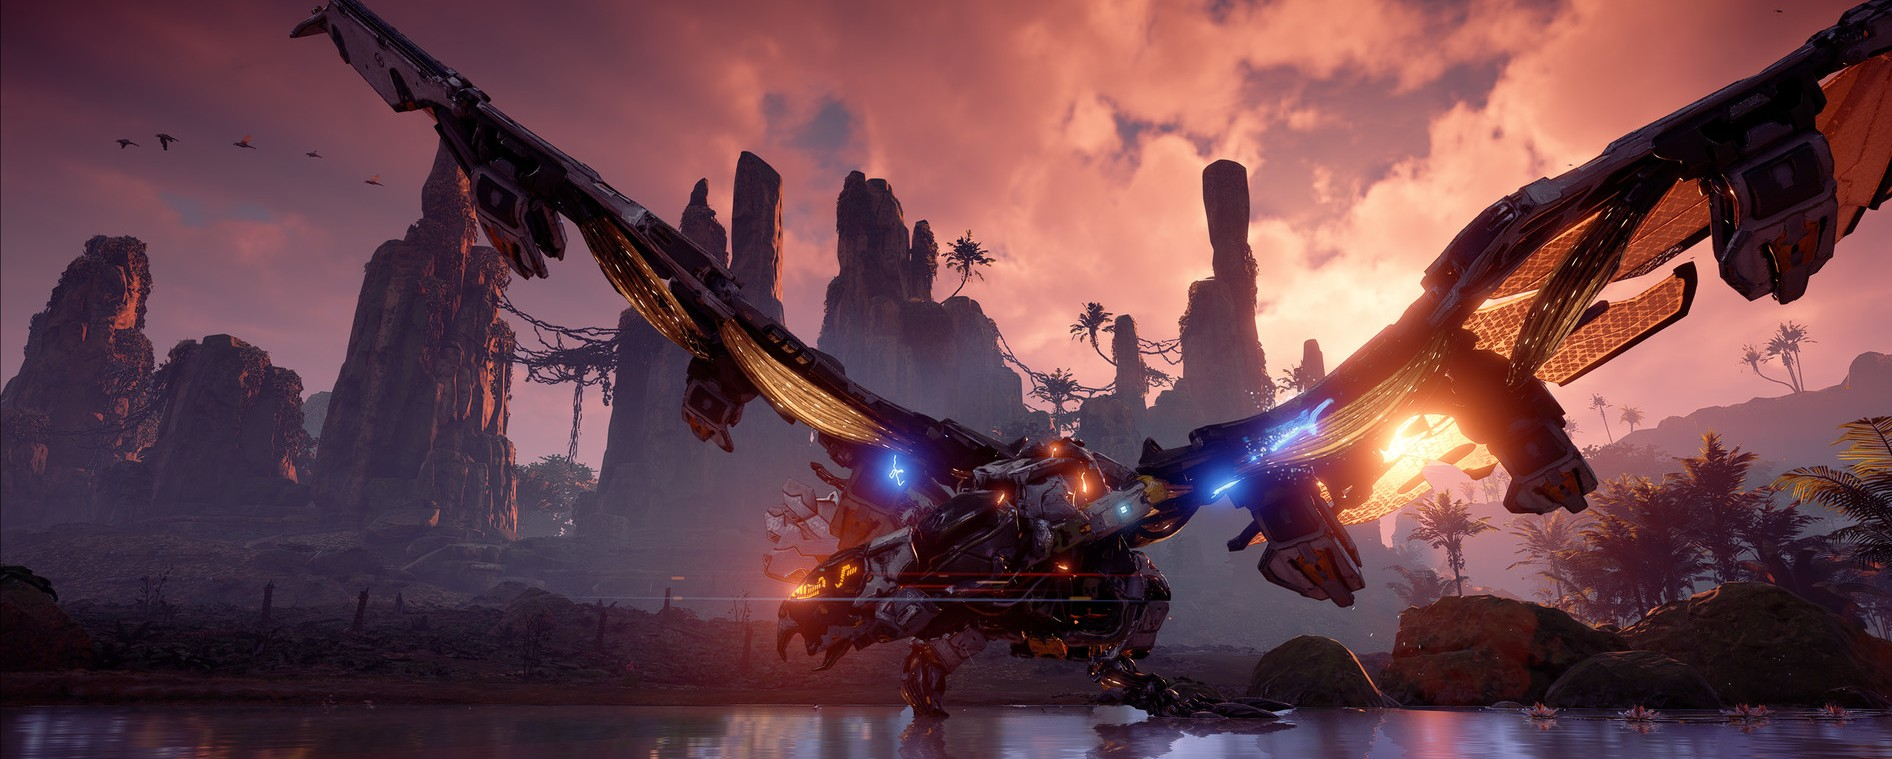 Horizon Zero Dawn Complete Edition arrives on Steam in August: here's the recommended specs screenshot